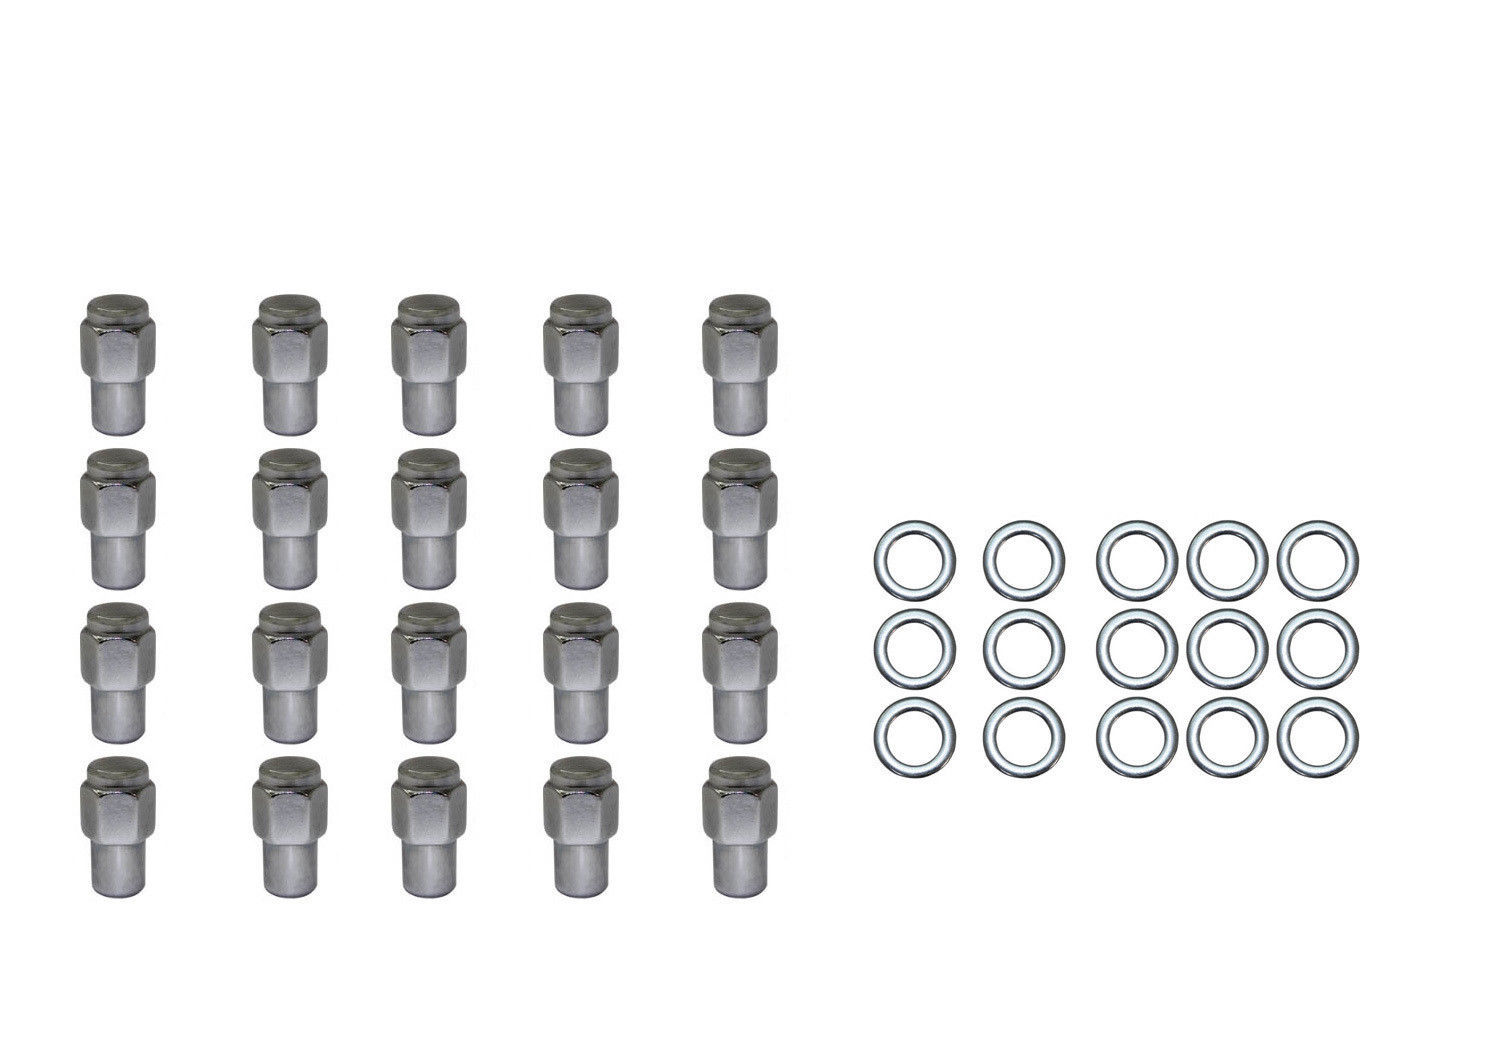 20pc Set Chrome Steel Mag Shank Lug Nuts 12mmx1 25 For